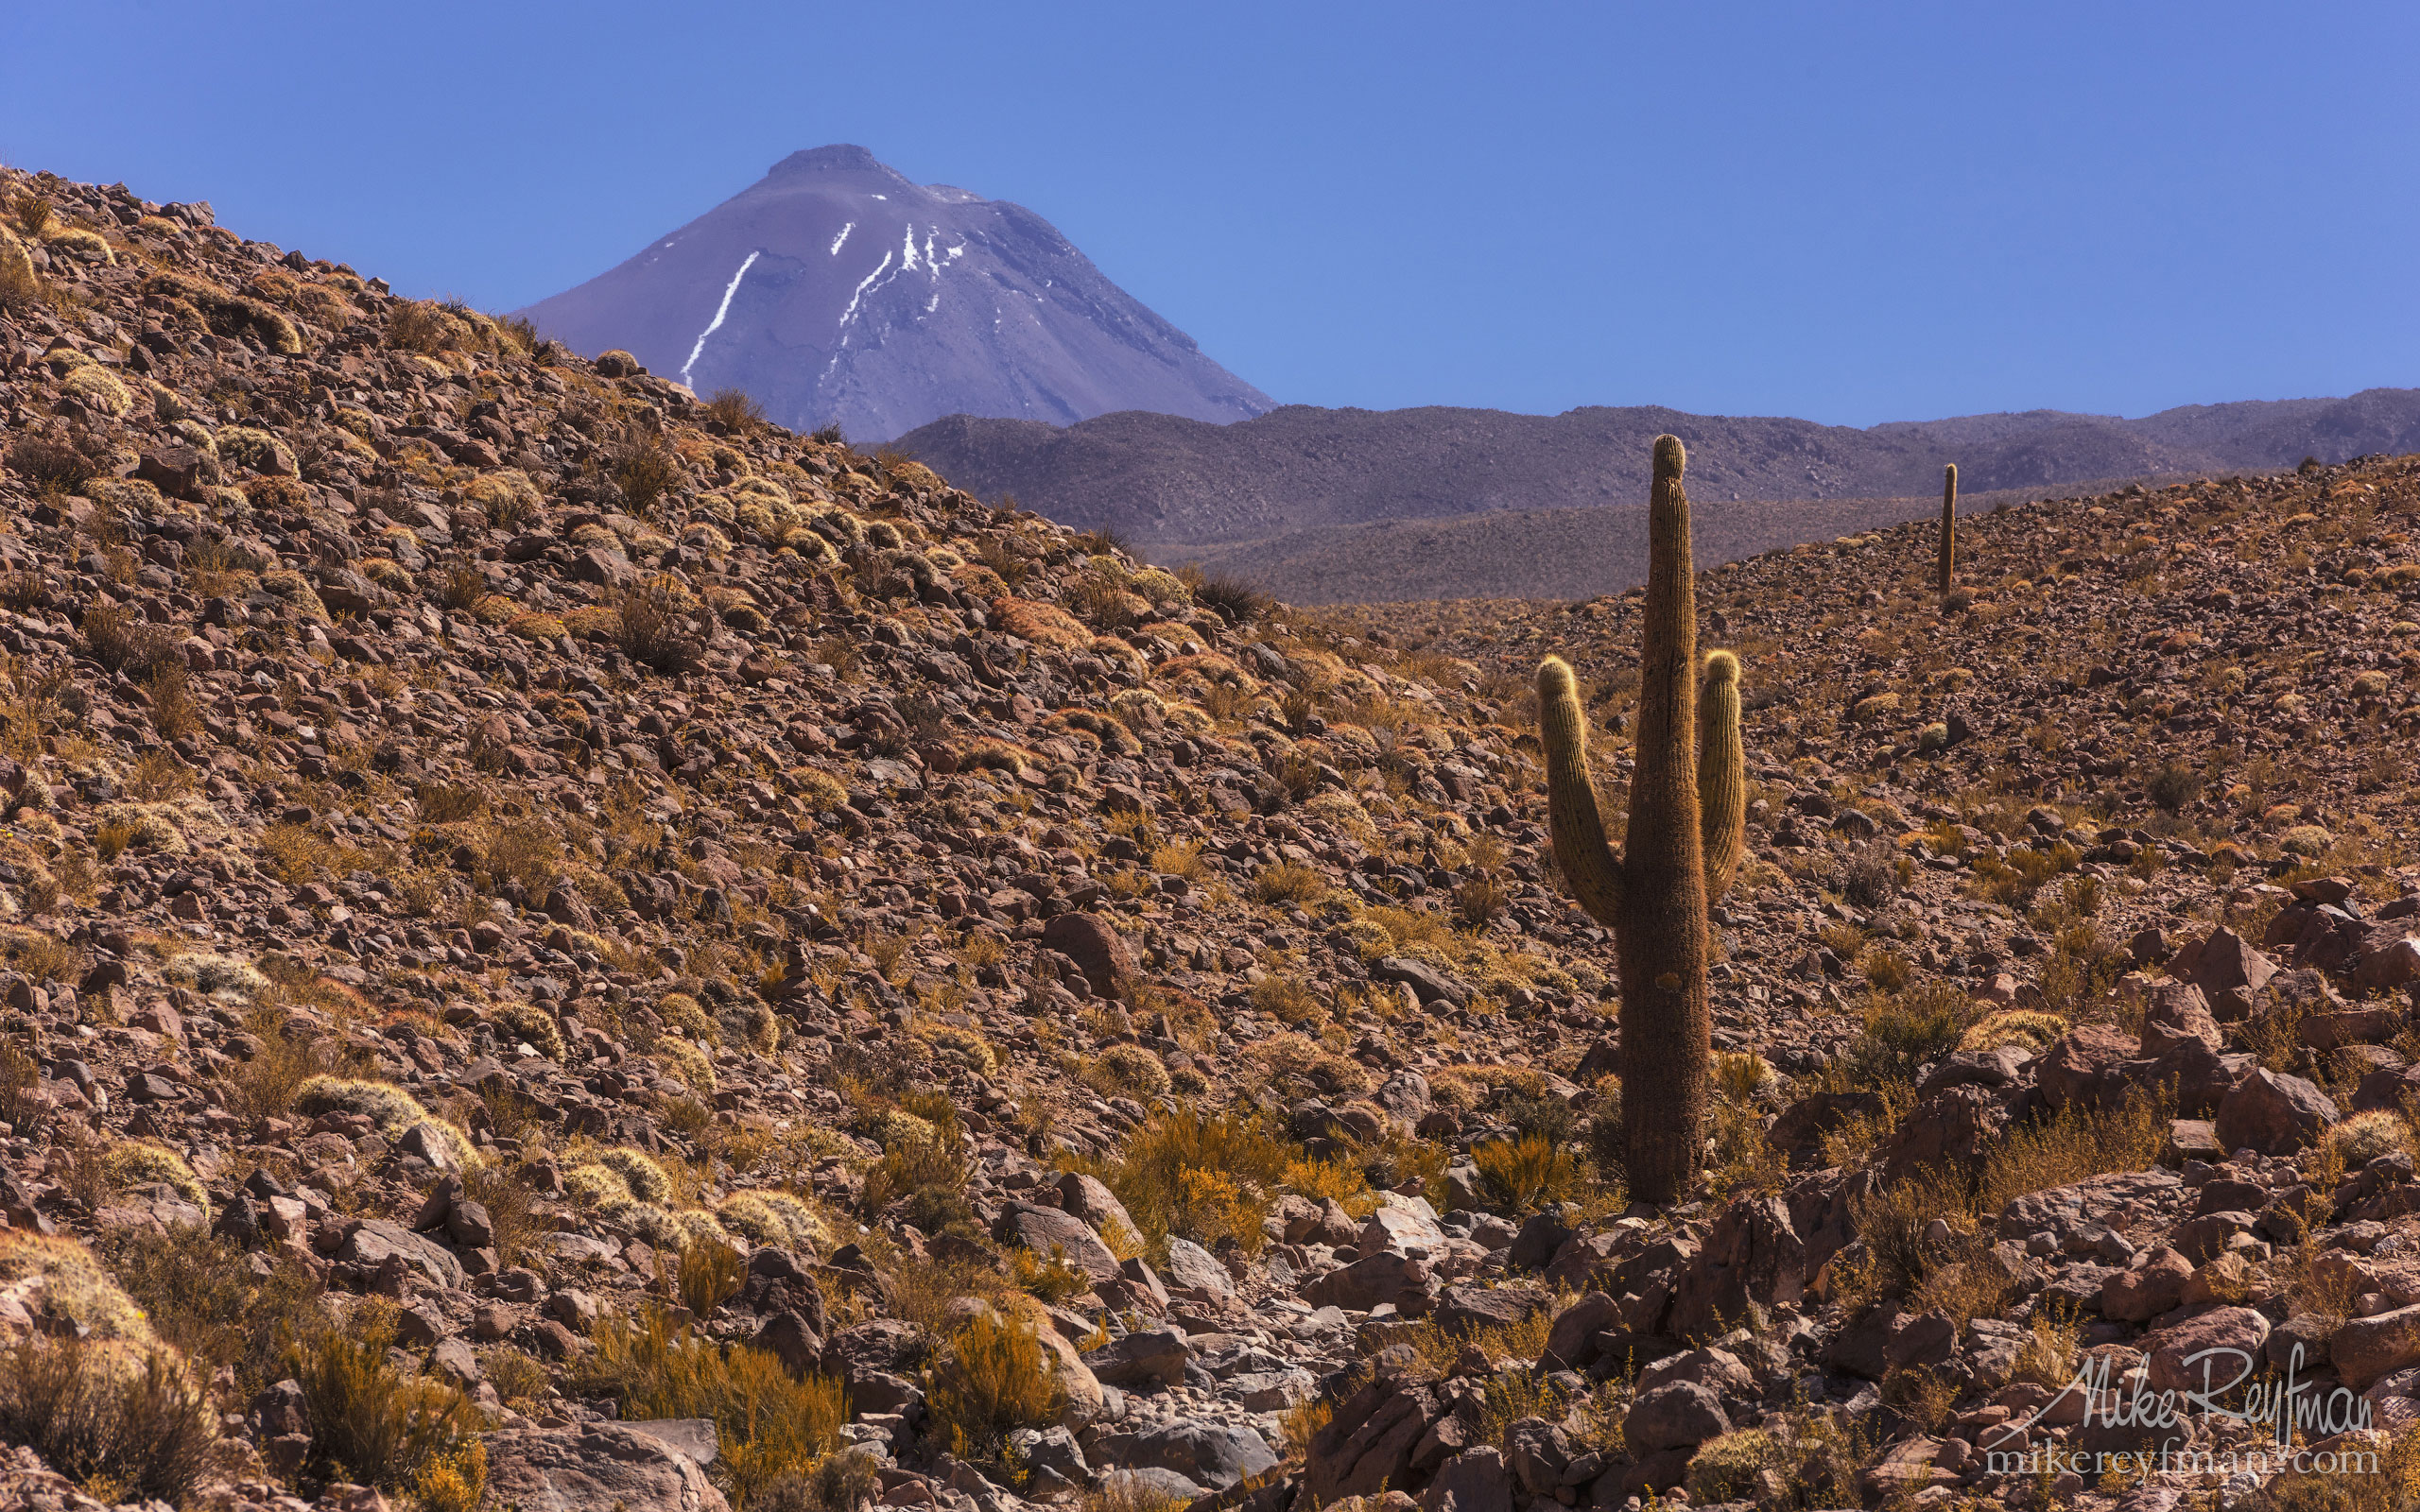 Volcano and Giant Cactus. Altiplano, Chile AA1-D1D8991 - Atacama and Altiplano. The Driest Desert and The High Plain - Mike Reyfman Photography